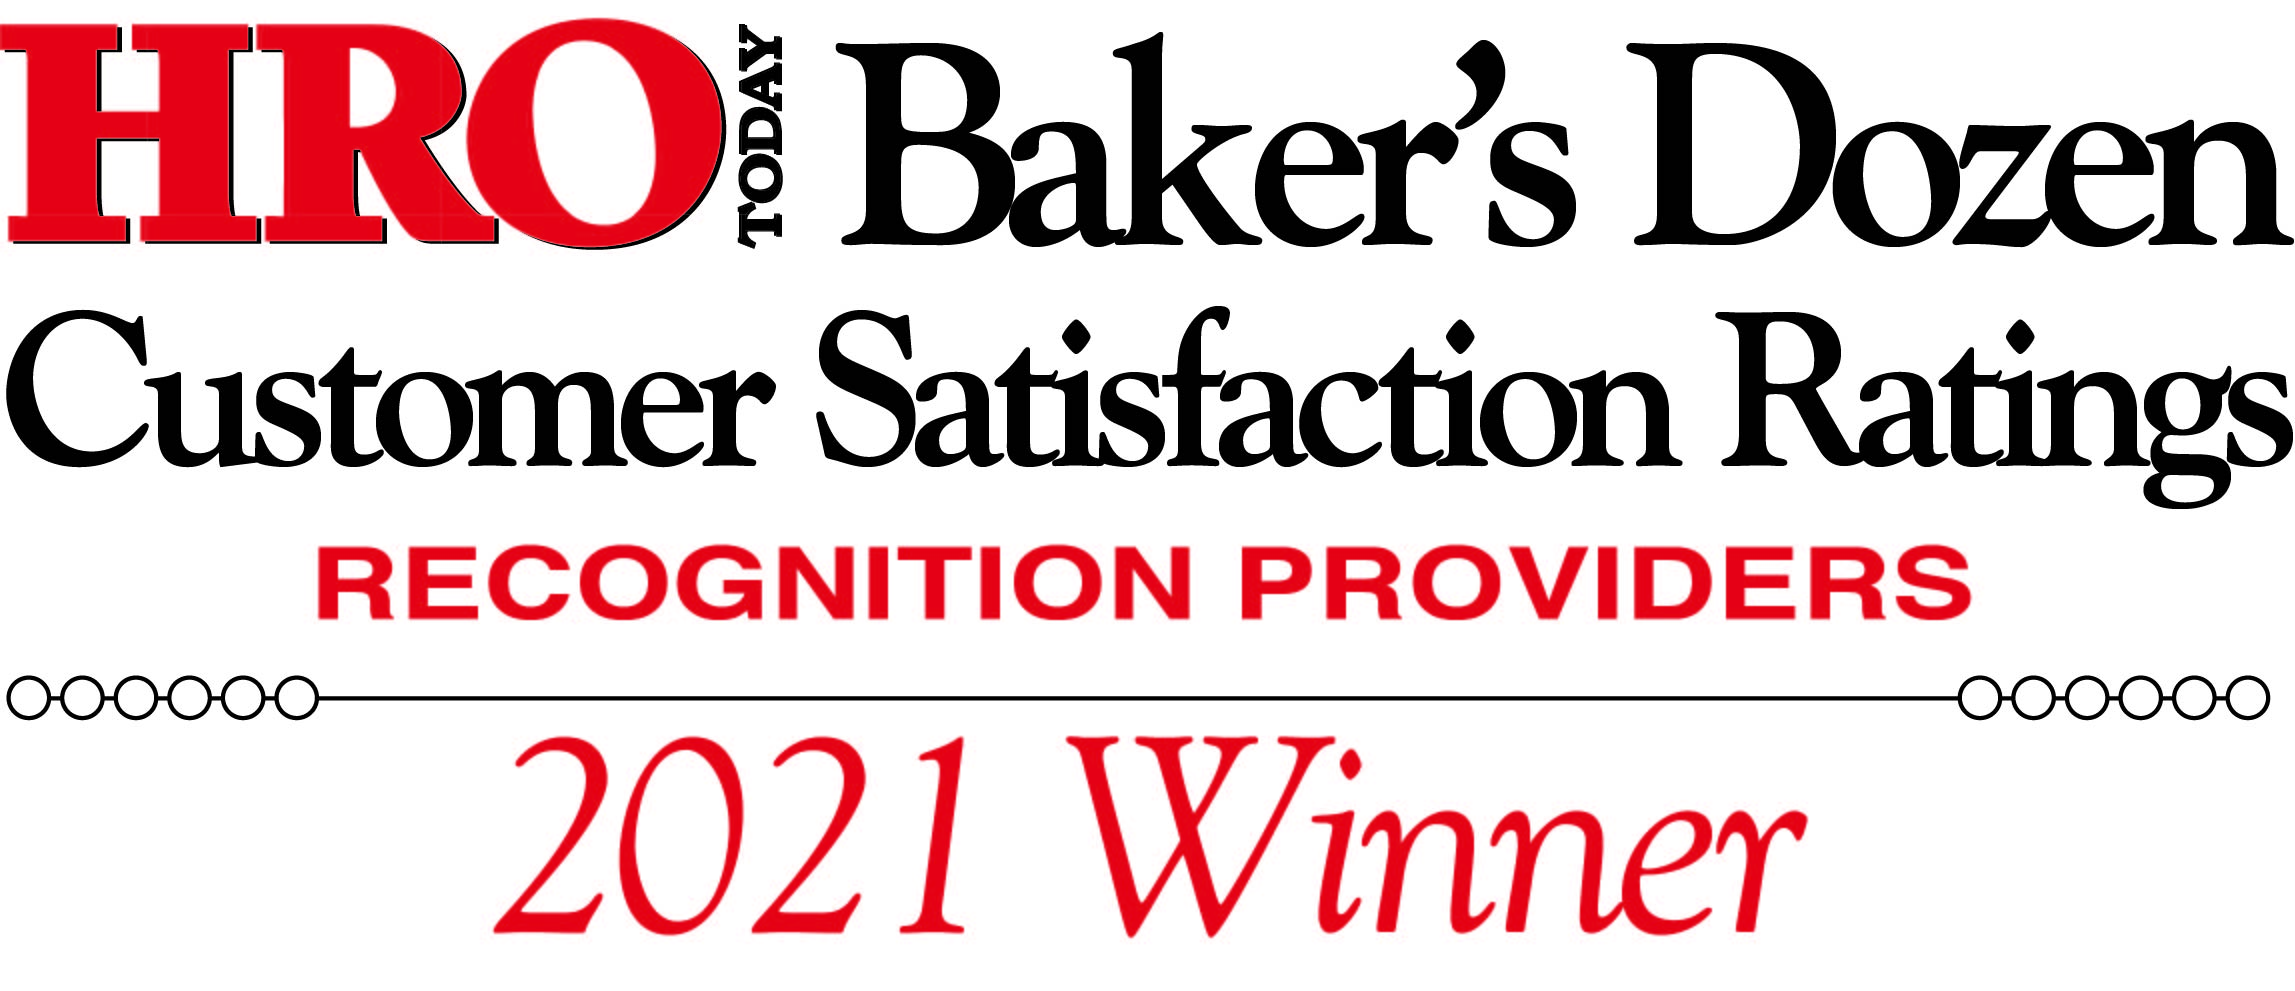 C.A. Short Company named top recognition provider by HRO Today's Baker's Dozen.